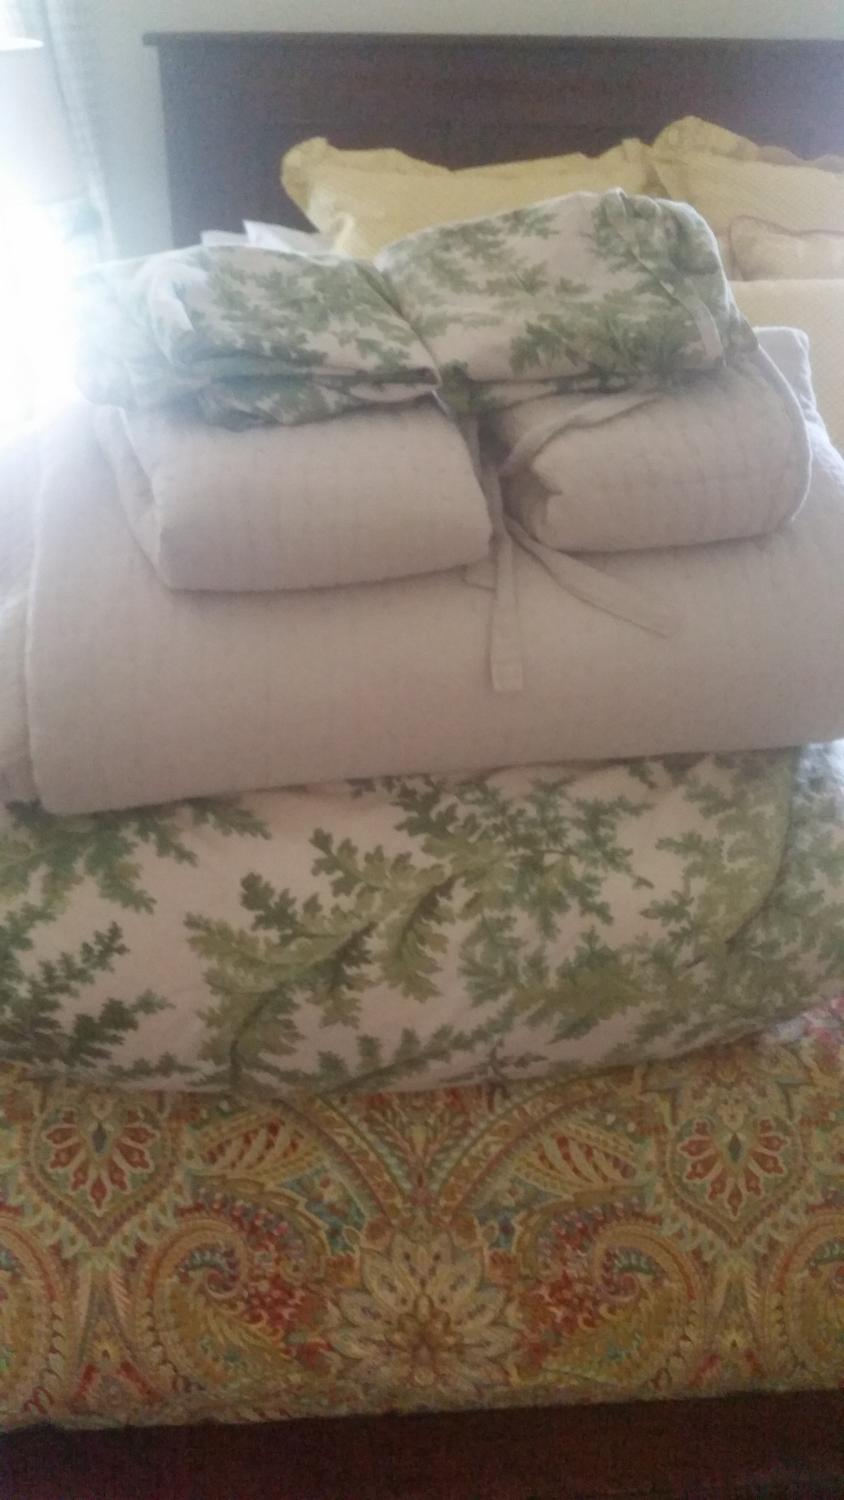 Find More Pottery Barn King Bedding For Sale At Up To 90 Off New Braunfels Tx